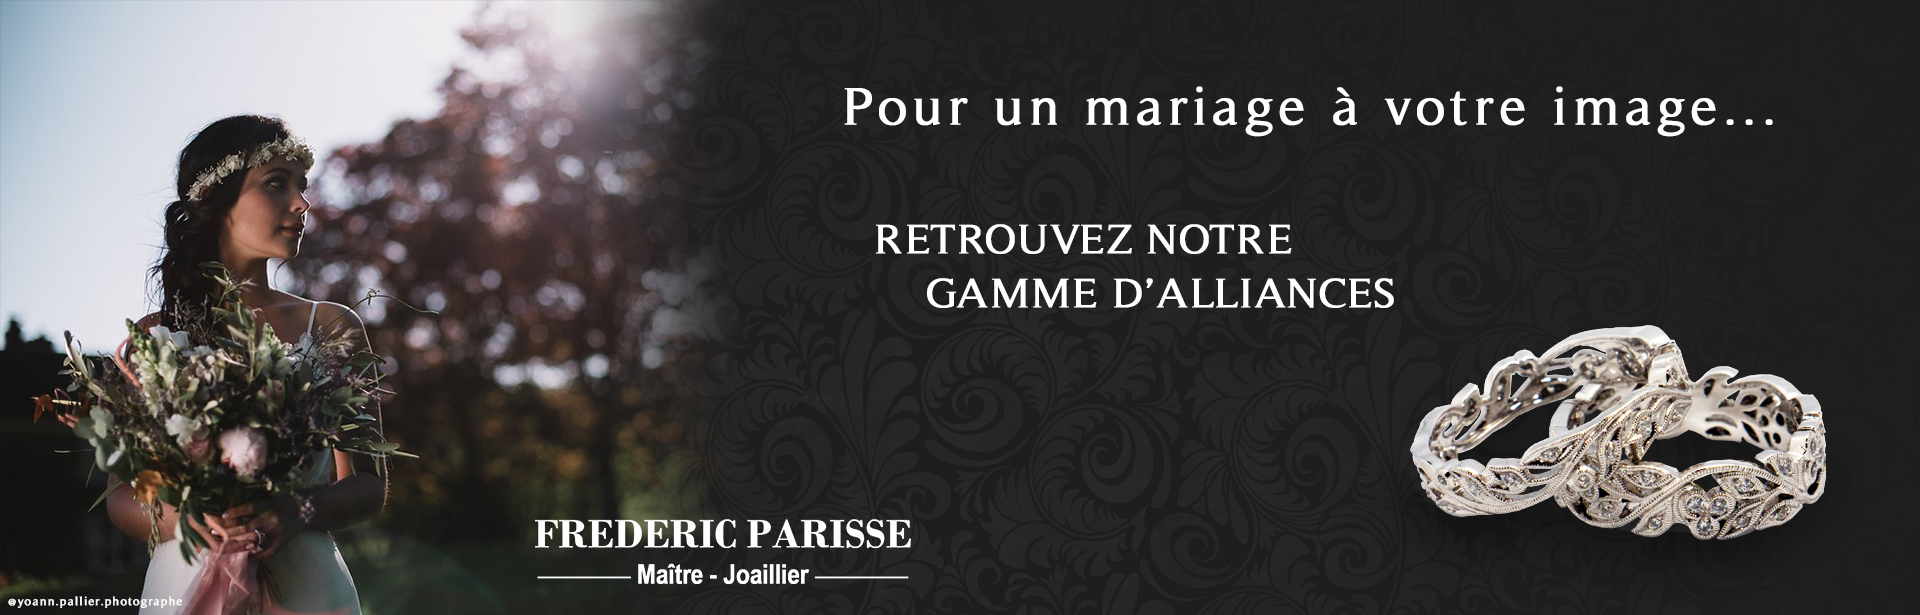 allianceMariage_fin